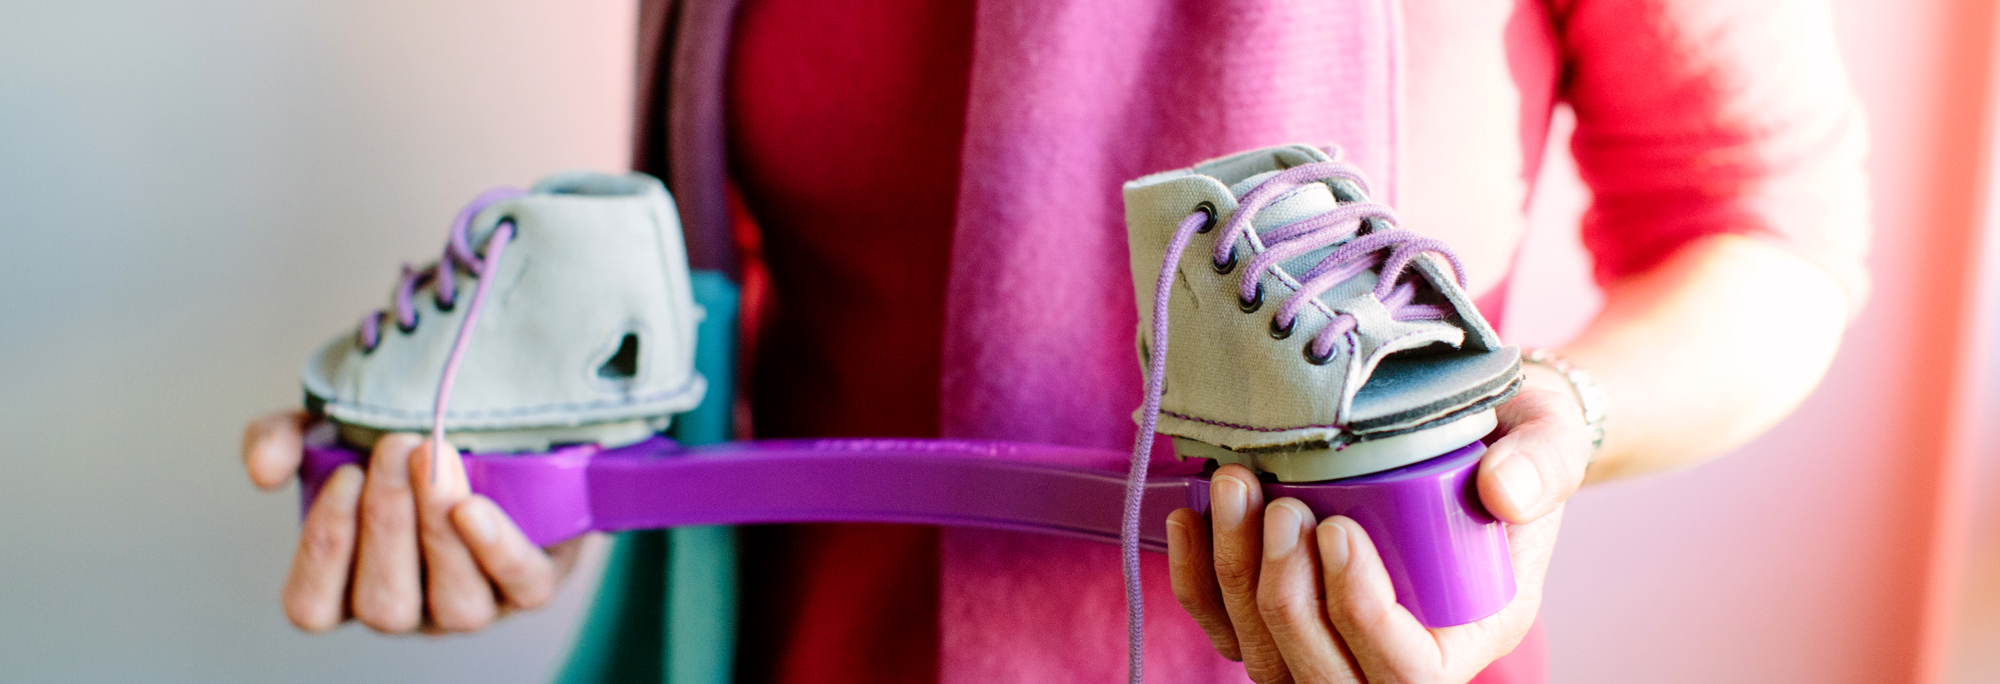 View of a child's clubfoot brace in purple